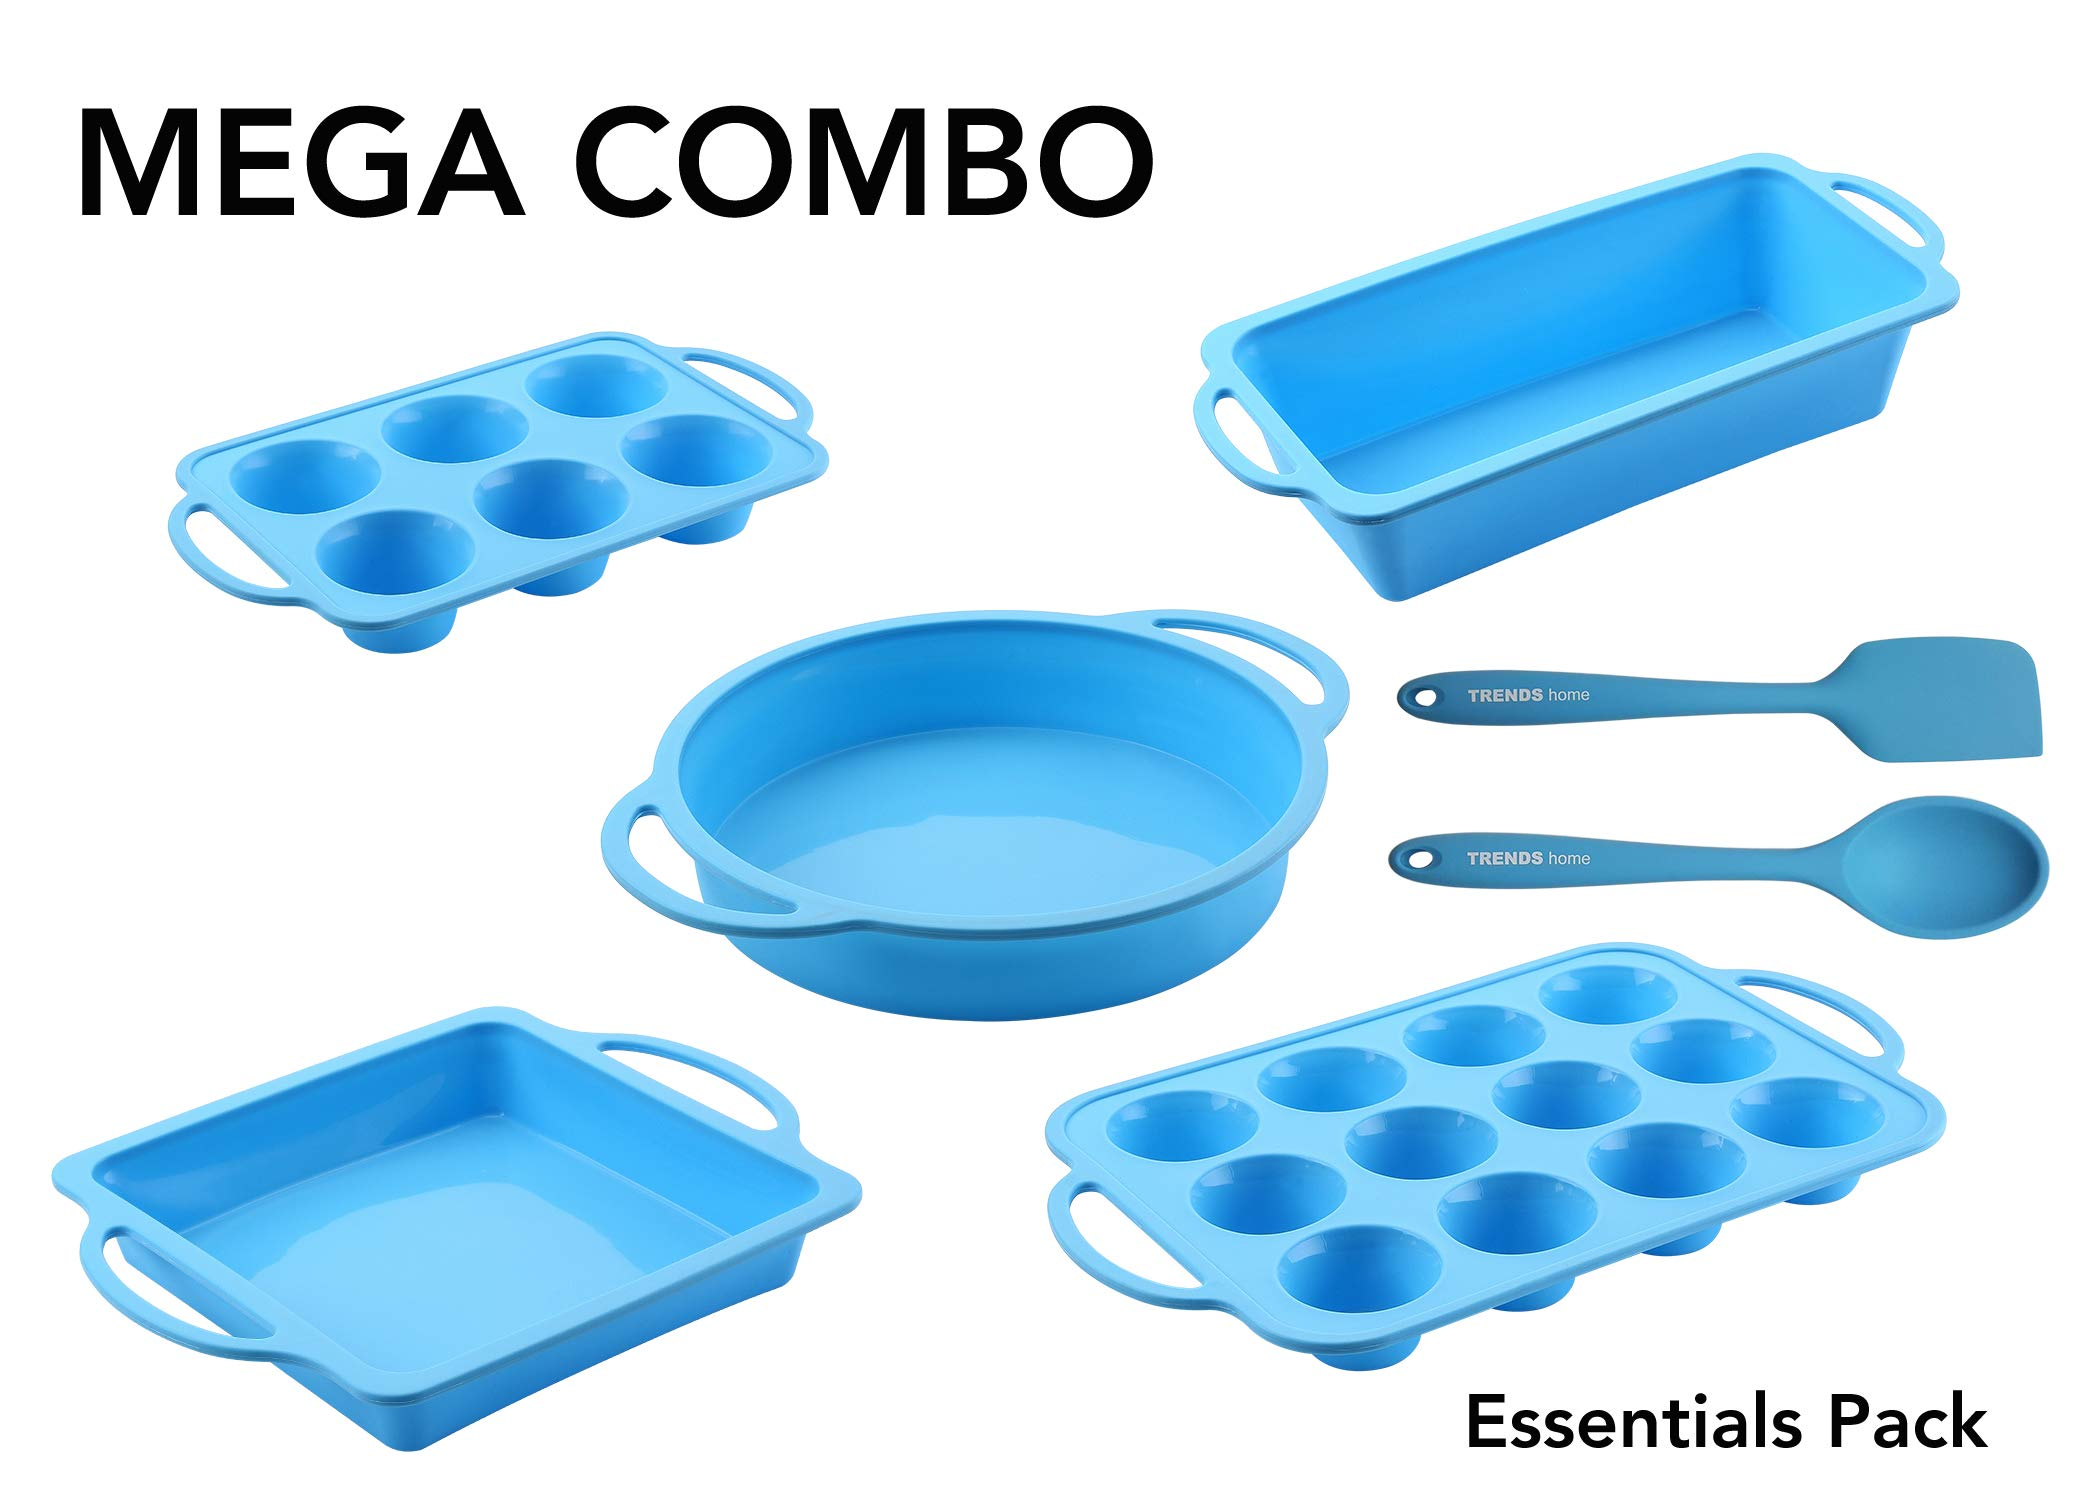 7 Pc Silicone Bakeware Set, 5 Baking Pans, BONUS Silicone Utensils. Non-Stick Silicone Baking Molds with reinforced frame for strength of a metal pan but flexibility of silicone moulds for baking.